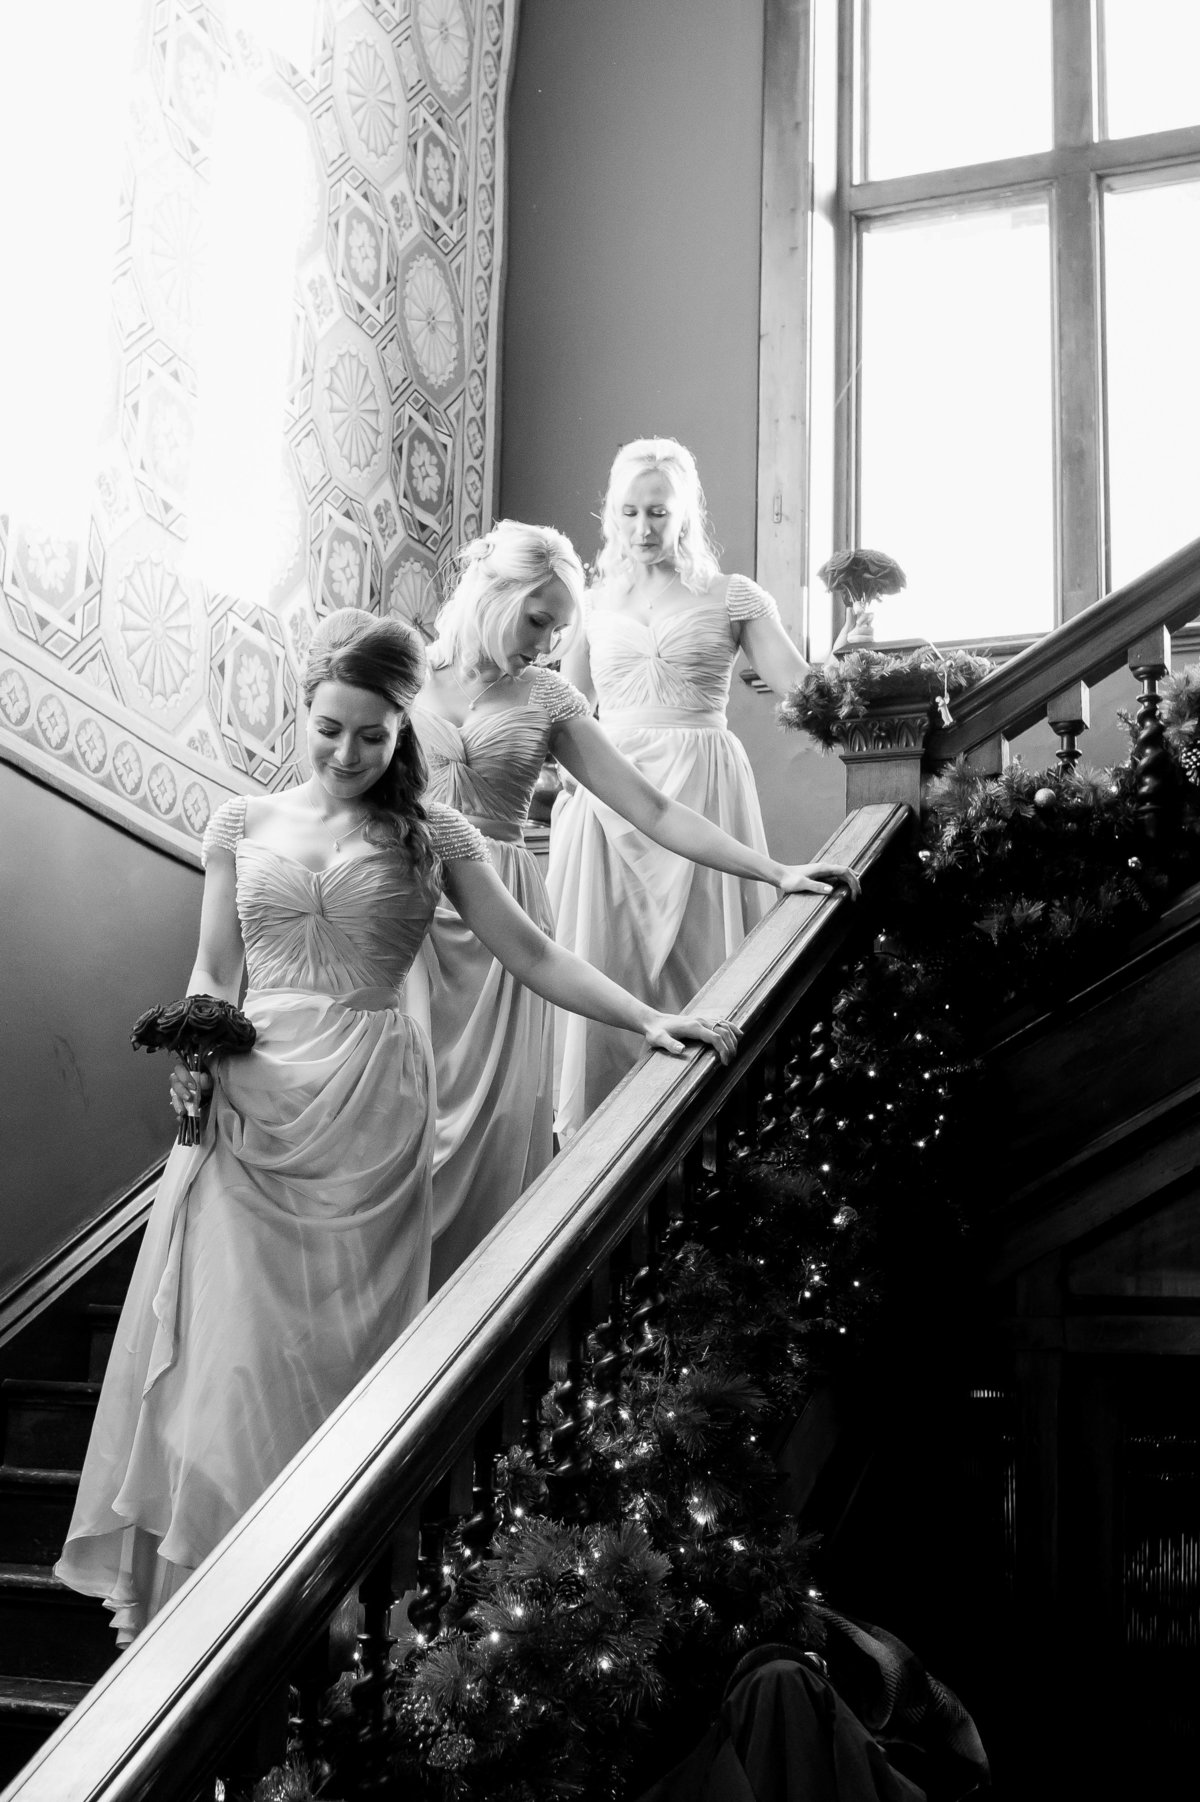 huntsham-court-wedding-photographer-devon-153